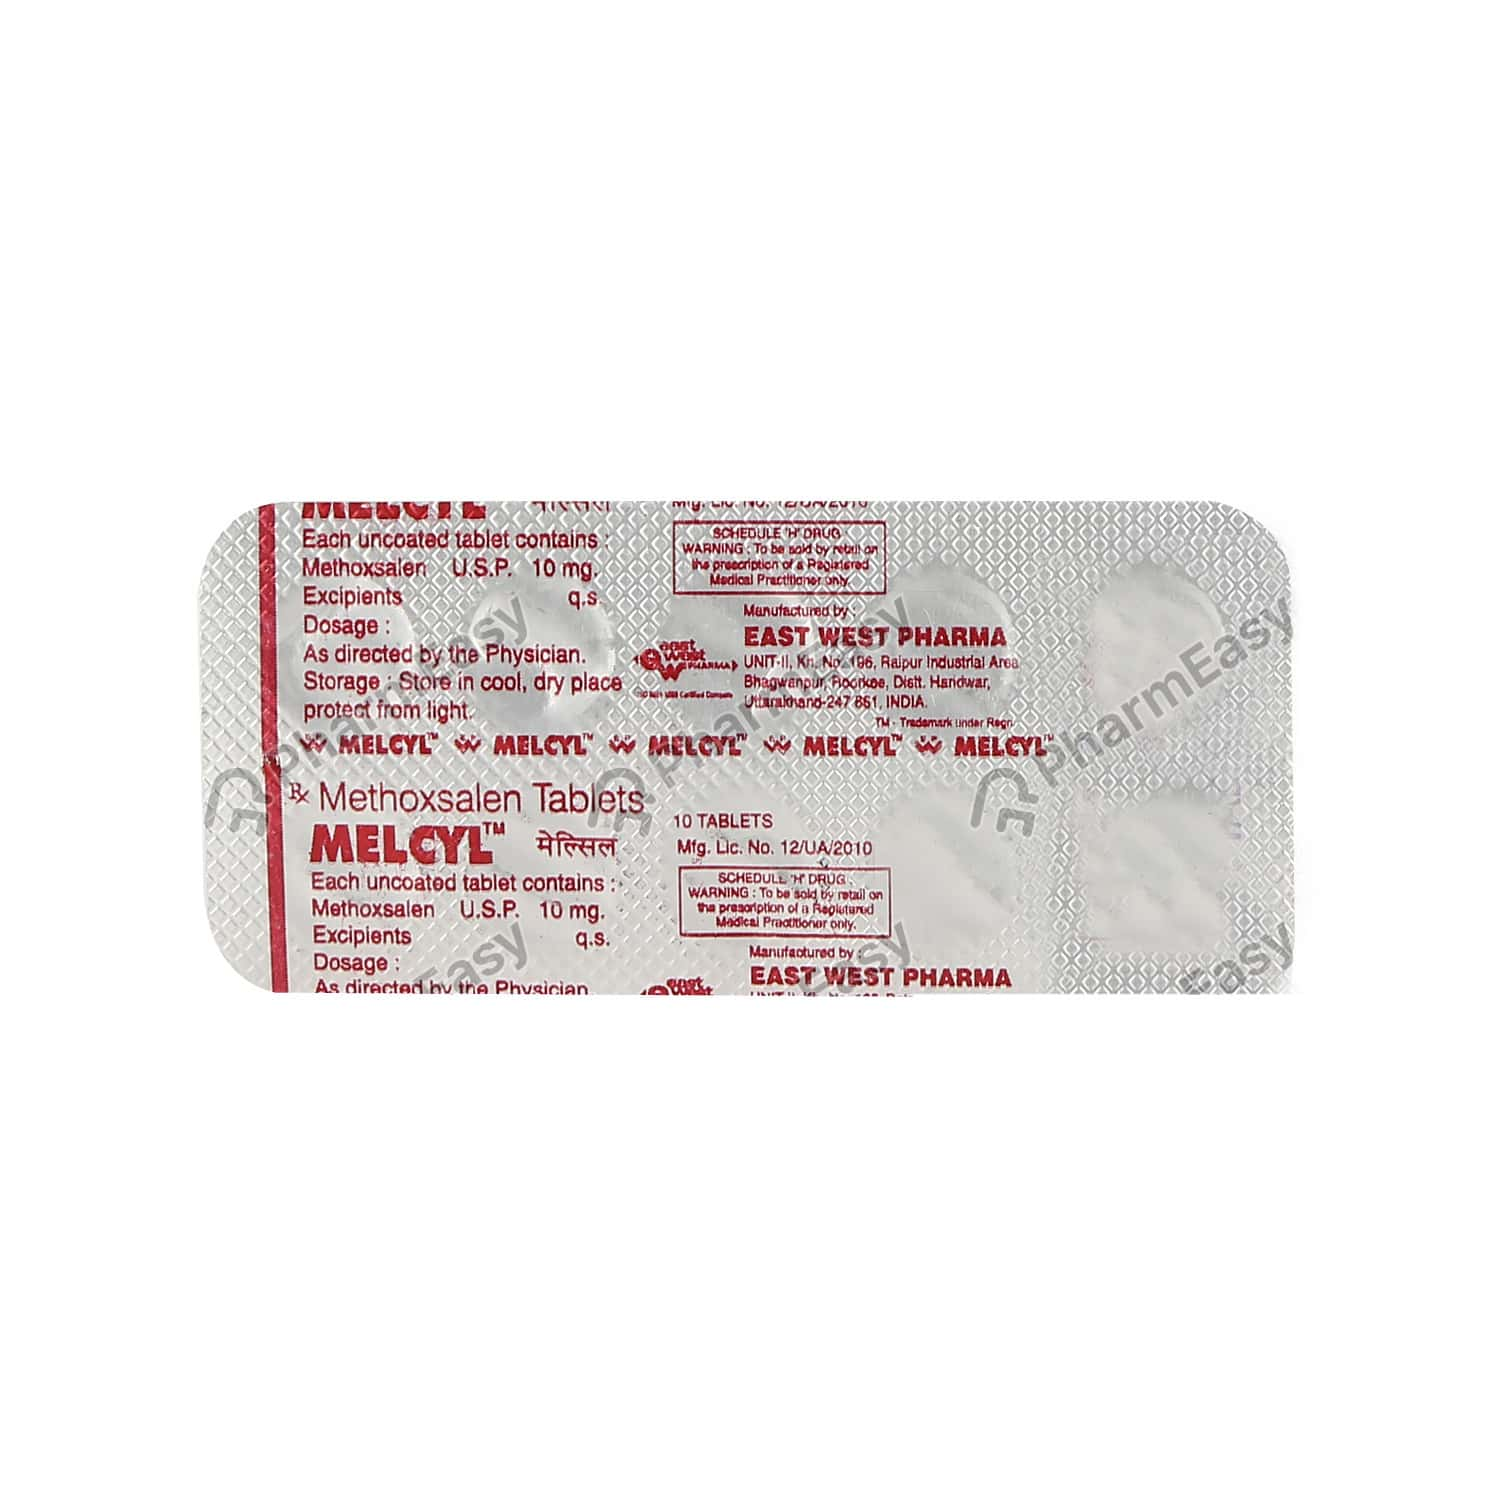 Melcyl 10mg Tablet